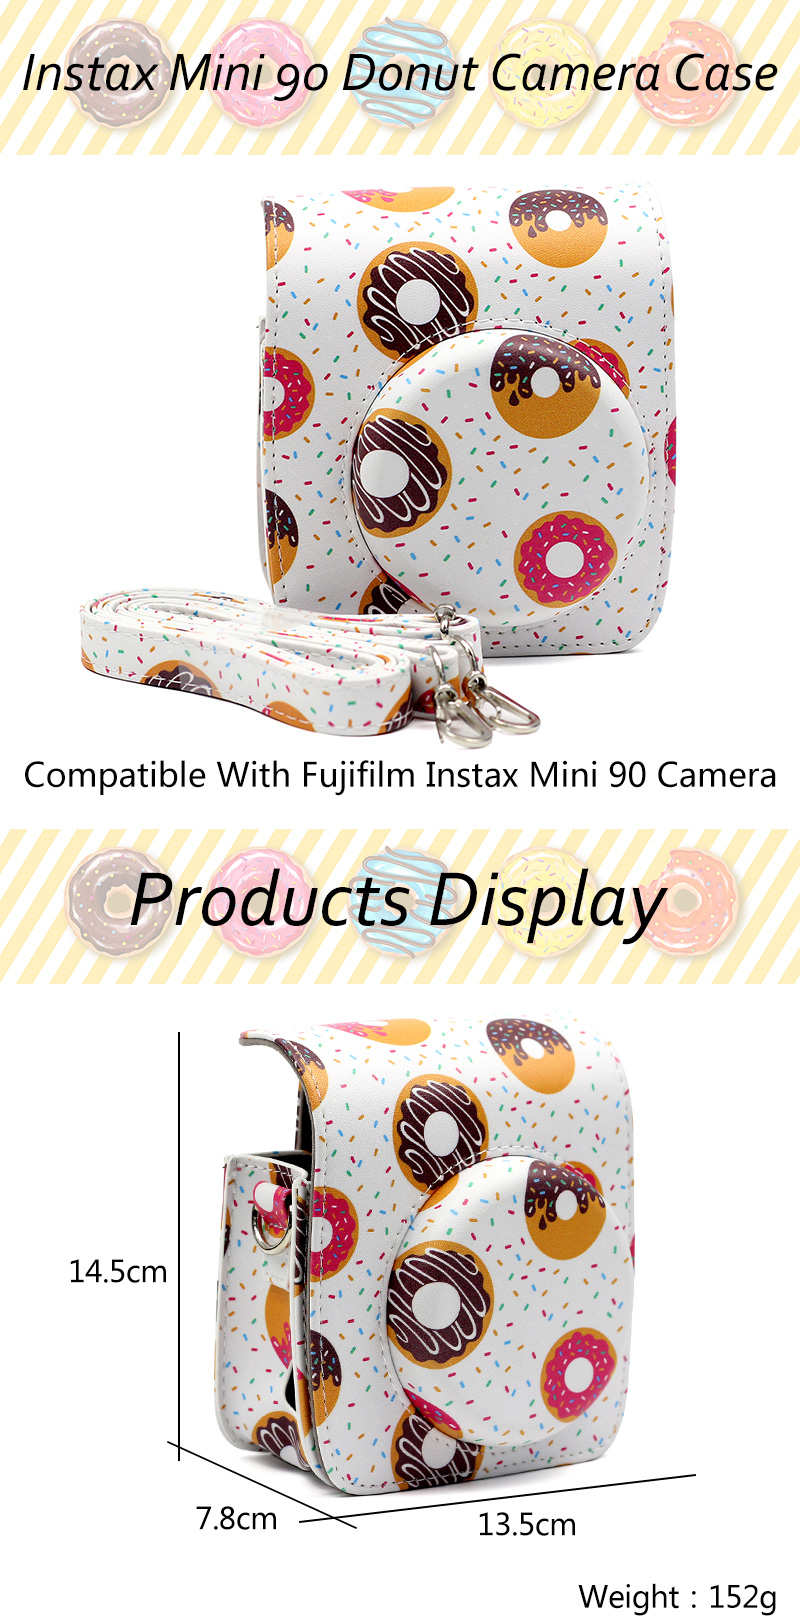 Instax Mini 90 Neo Donut Camera Bag